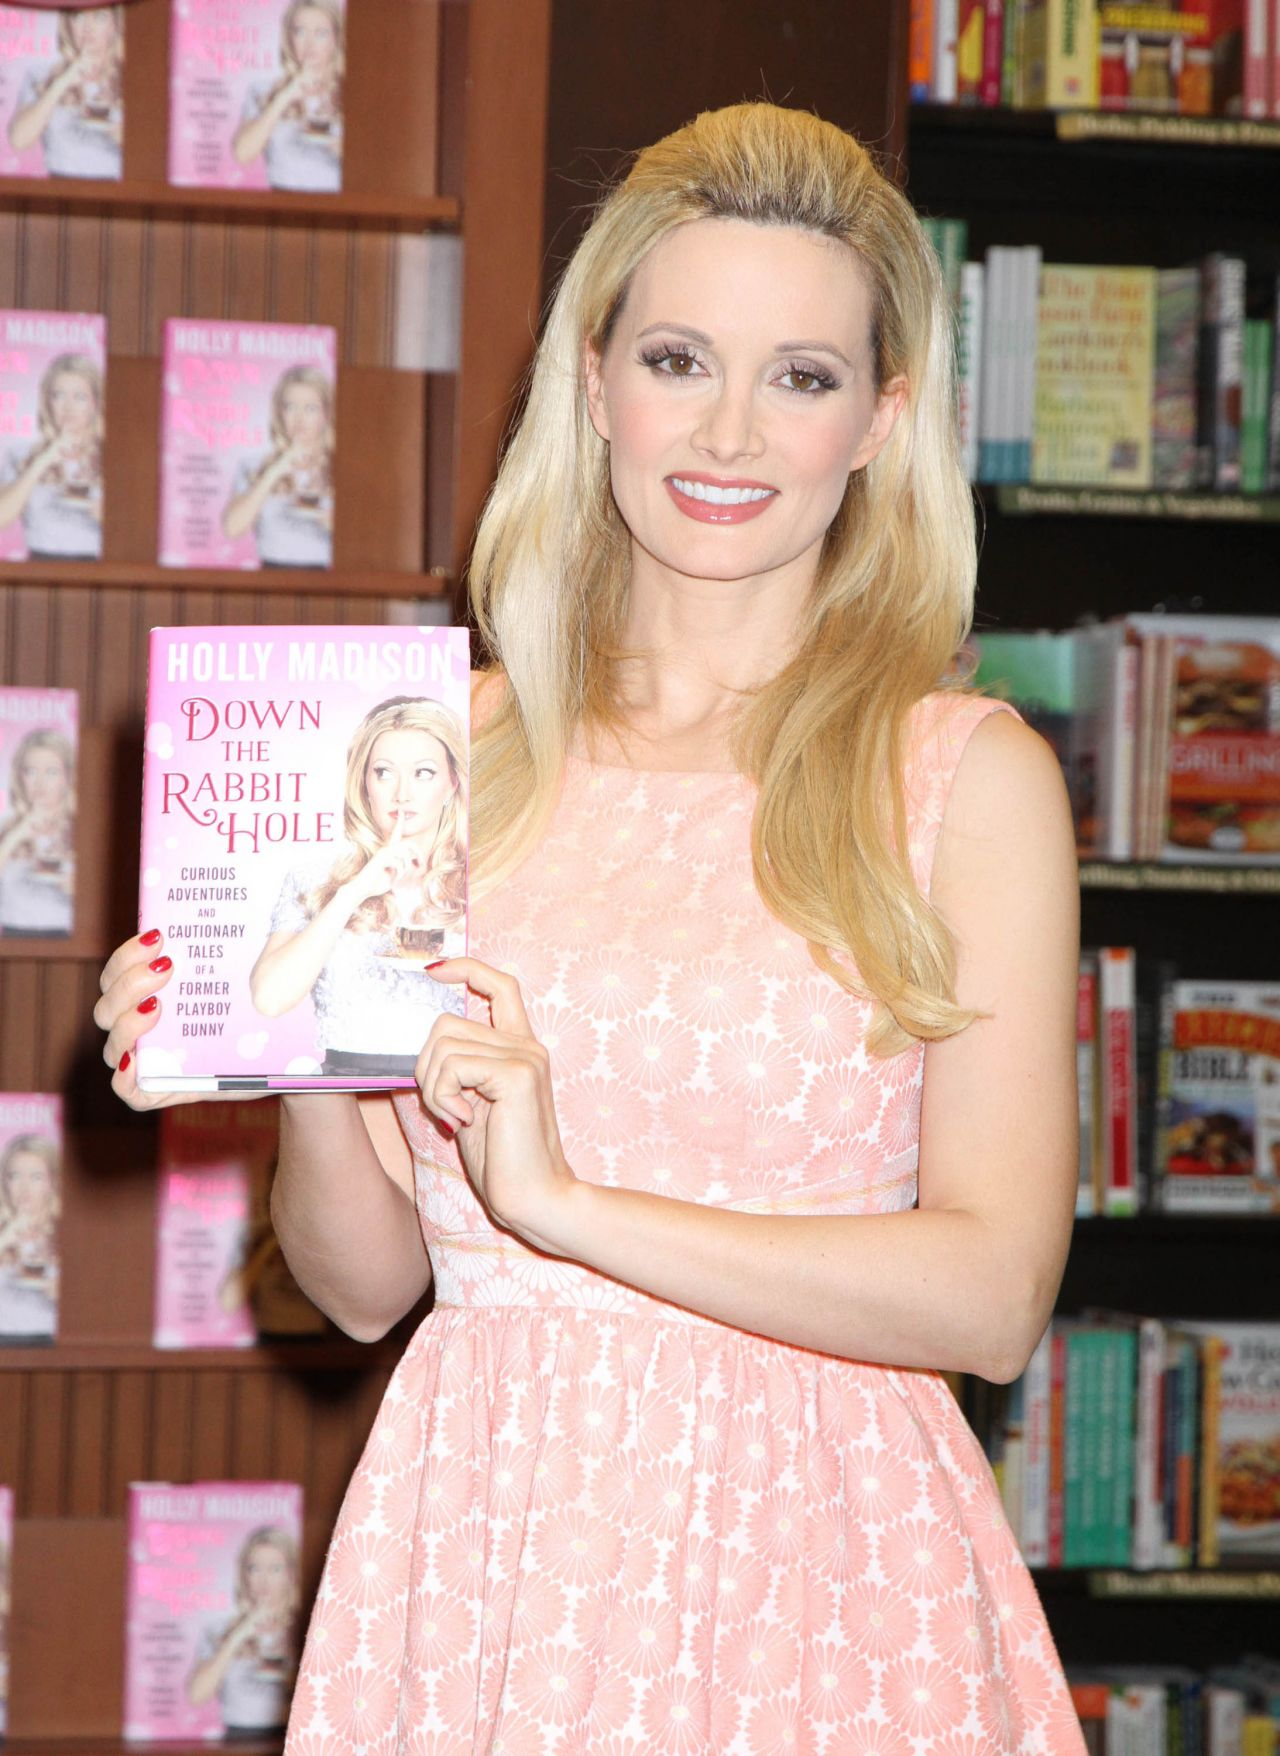 Holly Madison Signing Her Book Down The Rabbit Hole Las Vegas Crystal Harris With Bikini